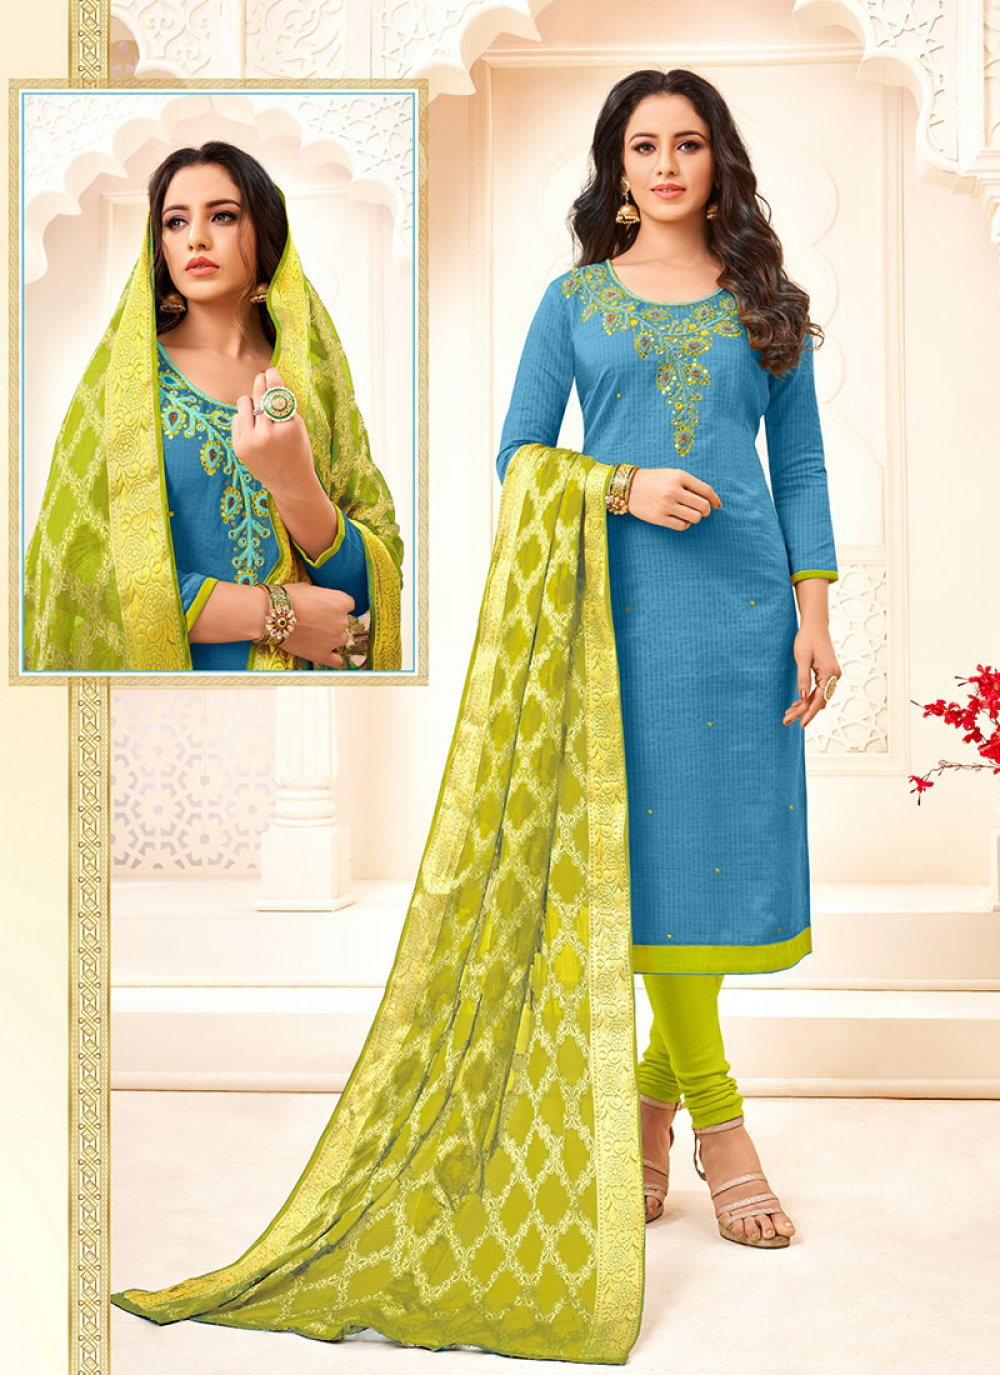 Embroidered Cotton Blue Trendy Churidar Salwar Kameez